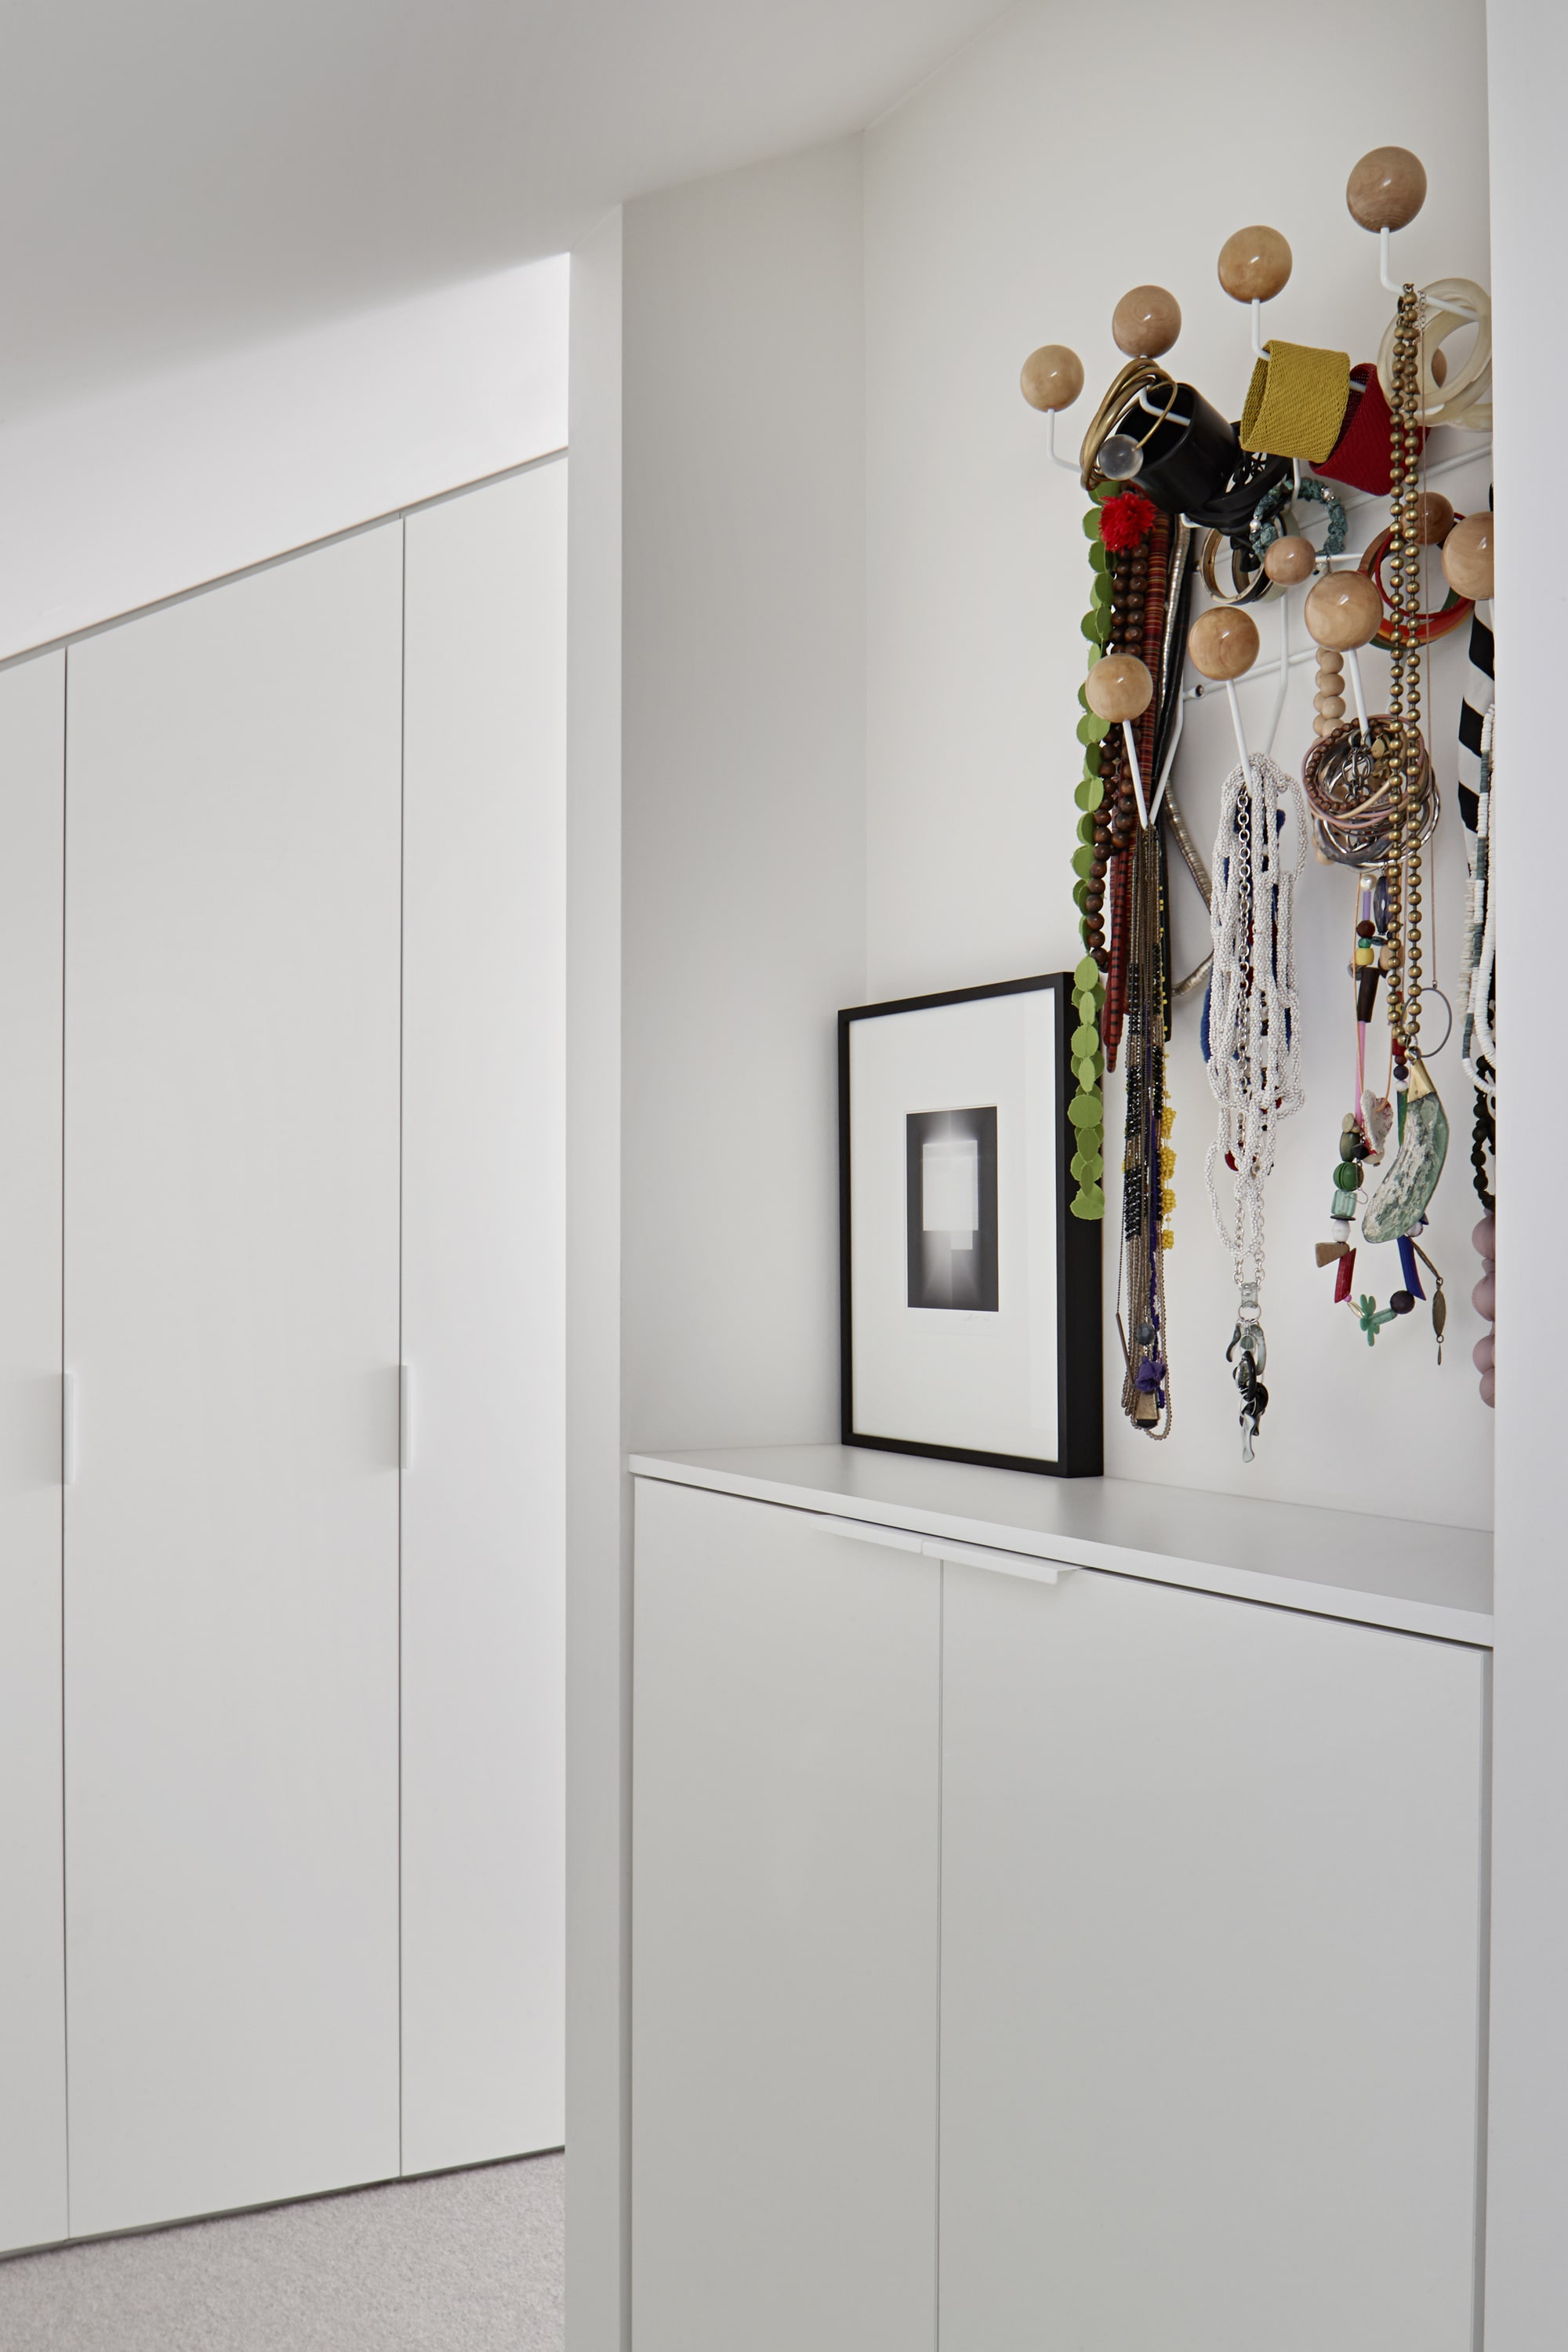 Material, Colour, Art And Object, So For For Their Home Robson Rak Sought A Place Of Retreat And Sanctuary.